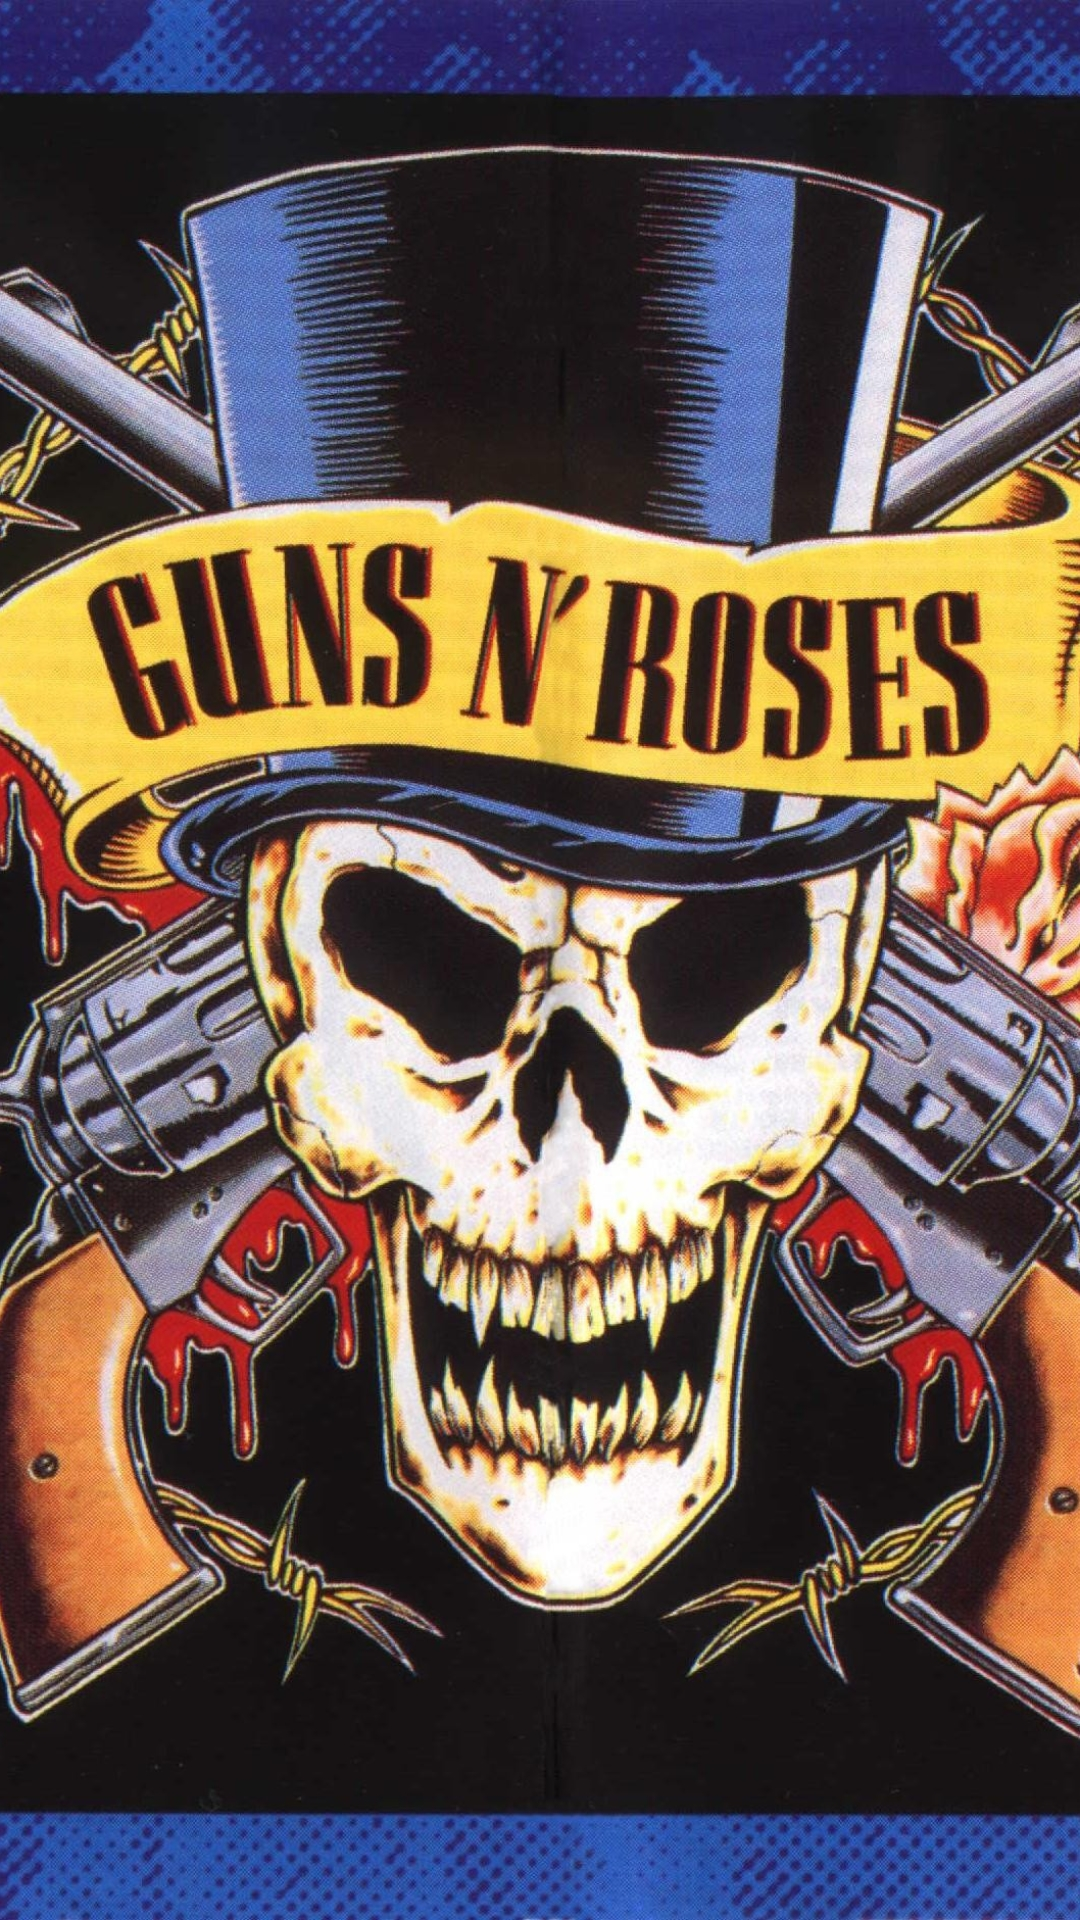 Music Guns N Roses 1080x1920 Wallpaper Id 101461 Mobile Abyss